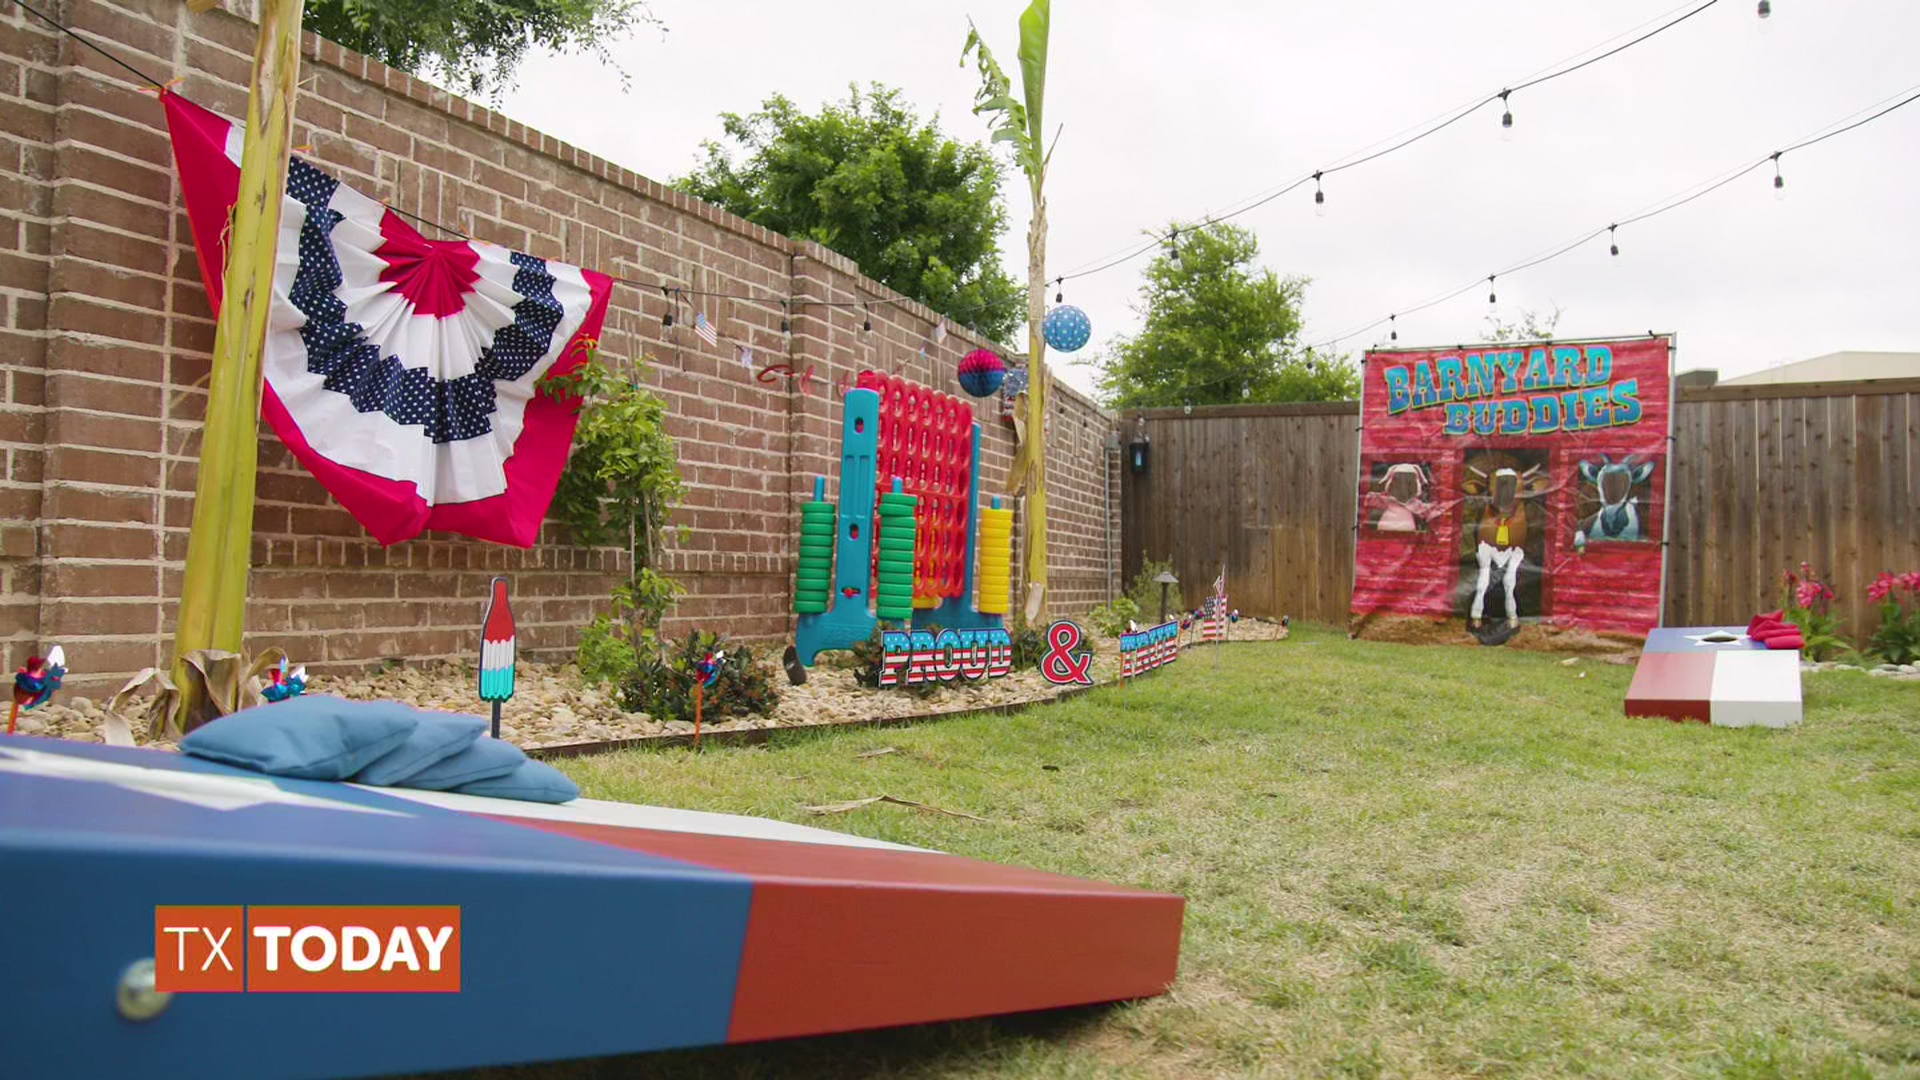 Plan the Perfect Memorial Day Bash in Your Backyard